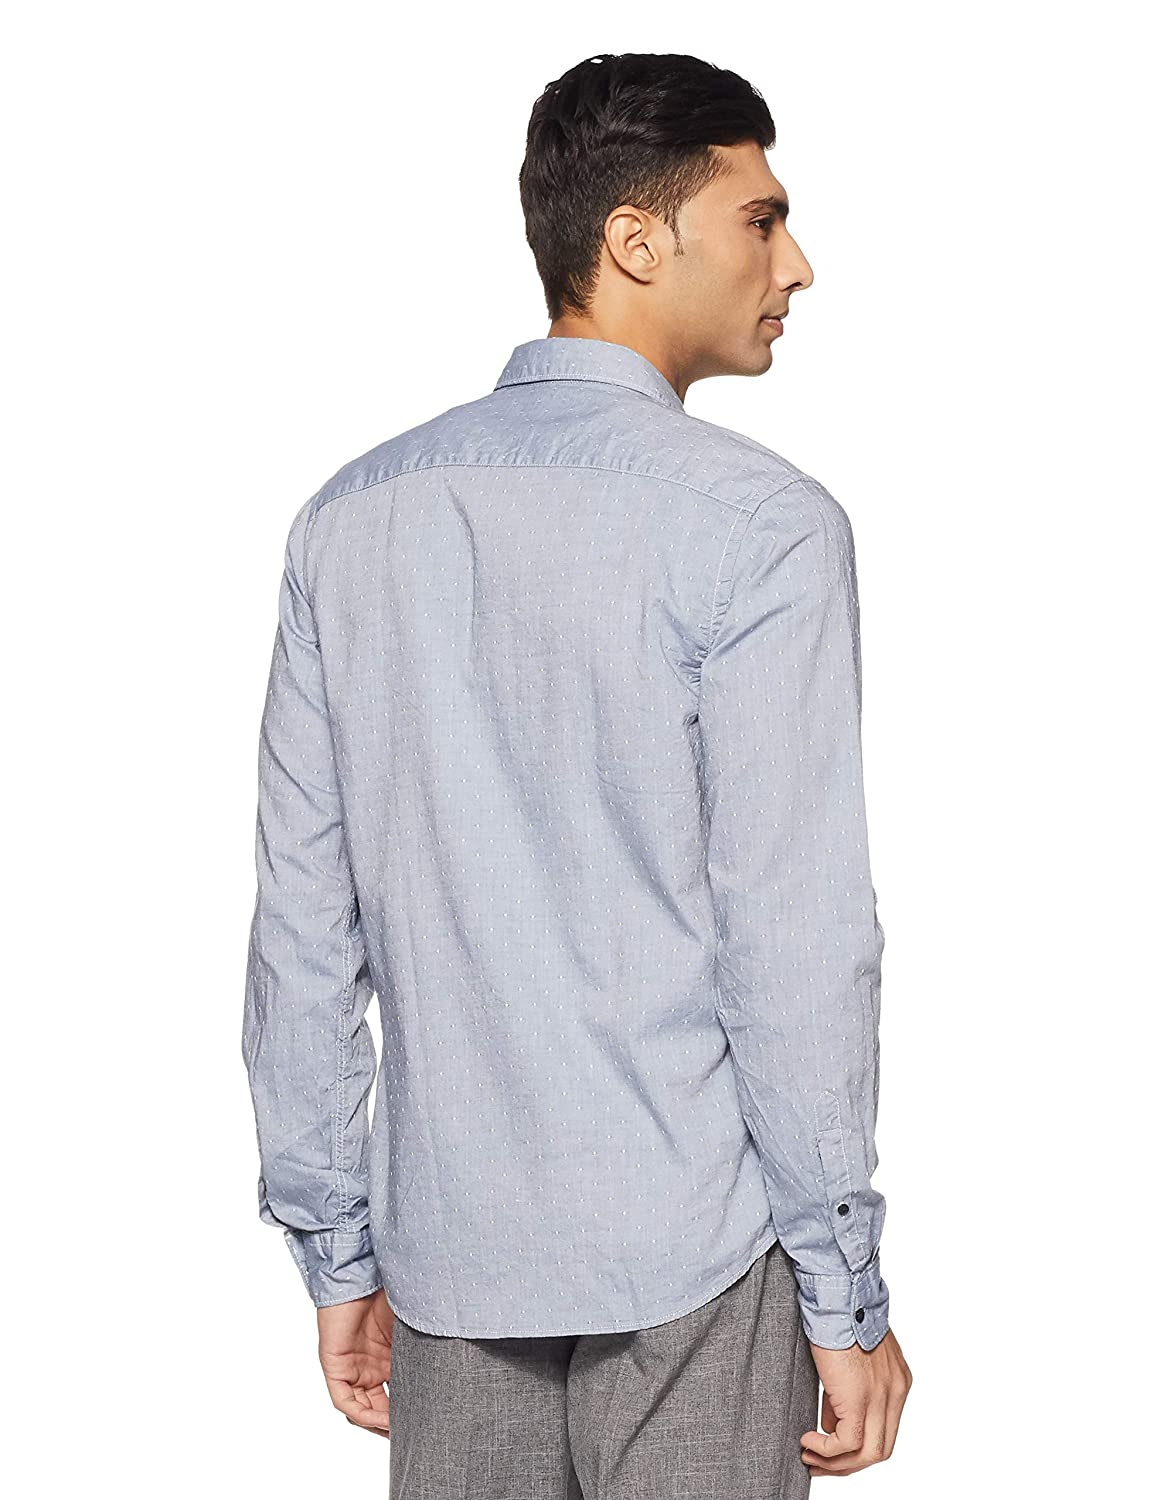 265825d83f6 Amazon.com: Scotch & Soda Mens Regular Fit Classic Shirt w/Chest Pocket,  Fixed Pocket Square: Clothing